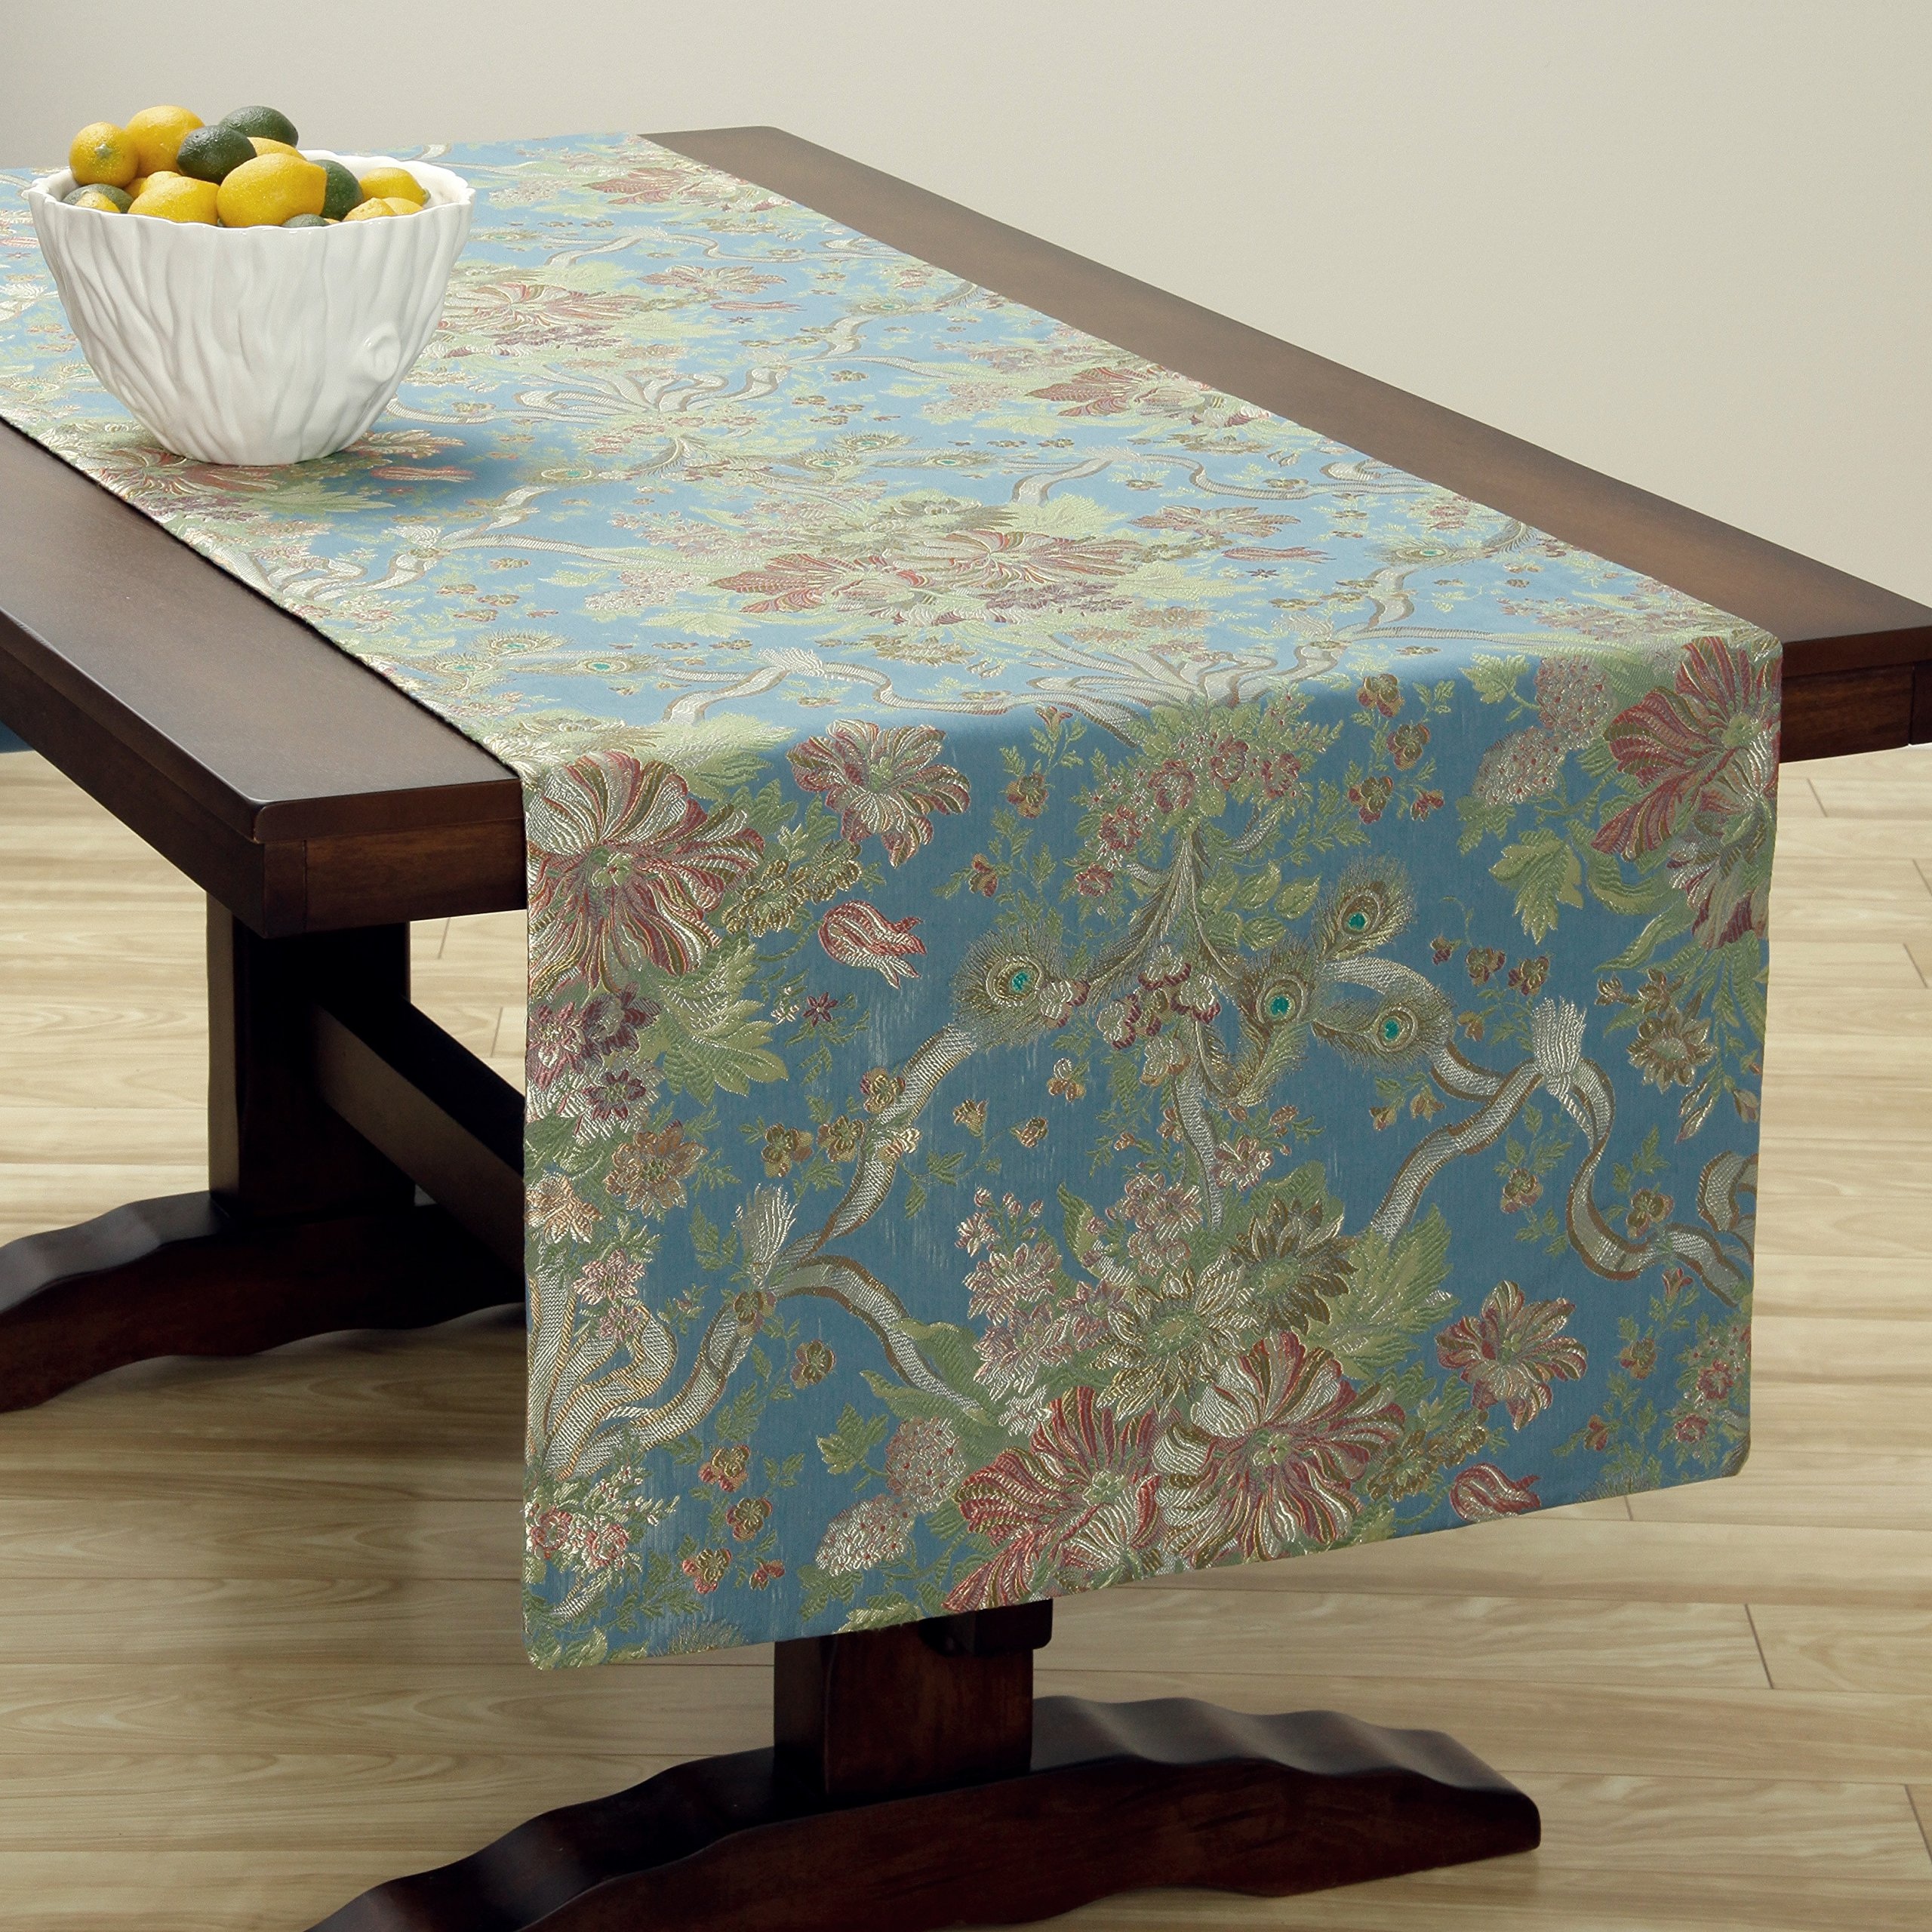 Corona Decor Extra-Wide Italian Woven Table Runner, 95 by 26-Inch, Blue/Rose